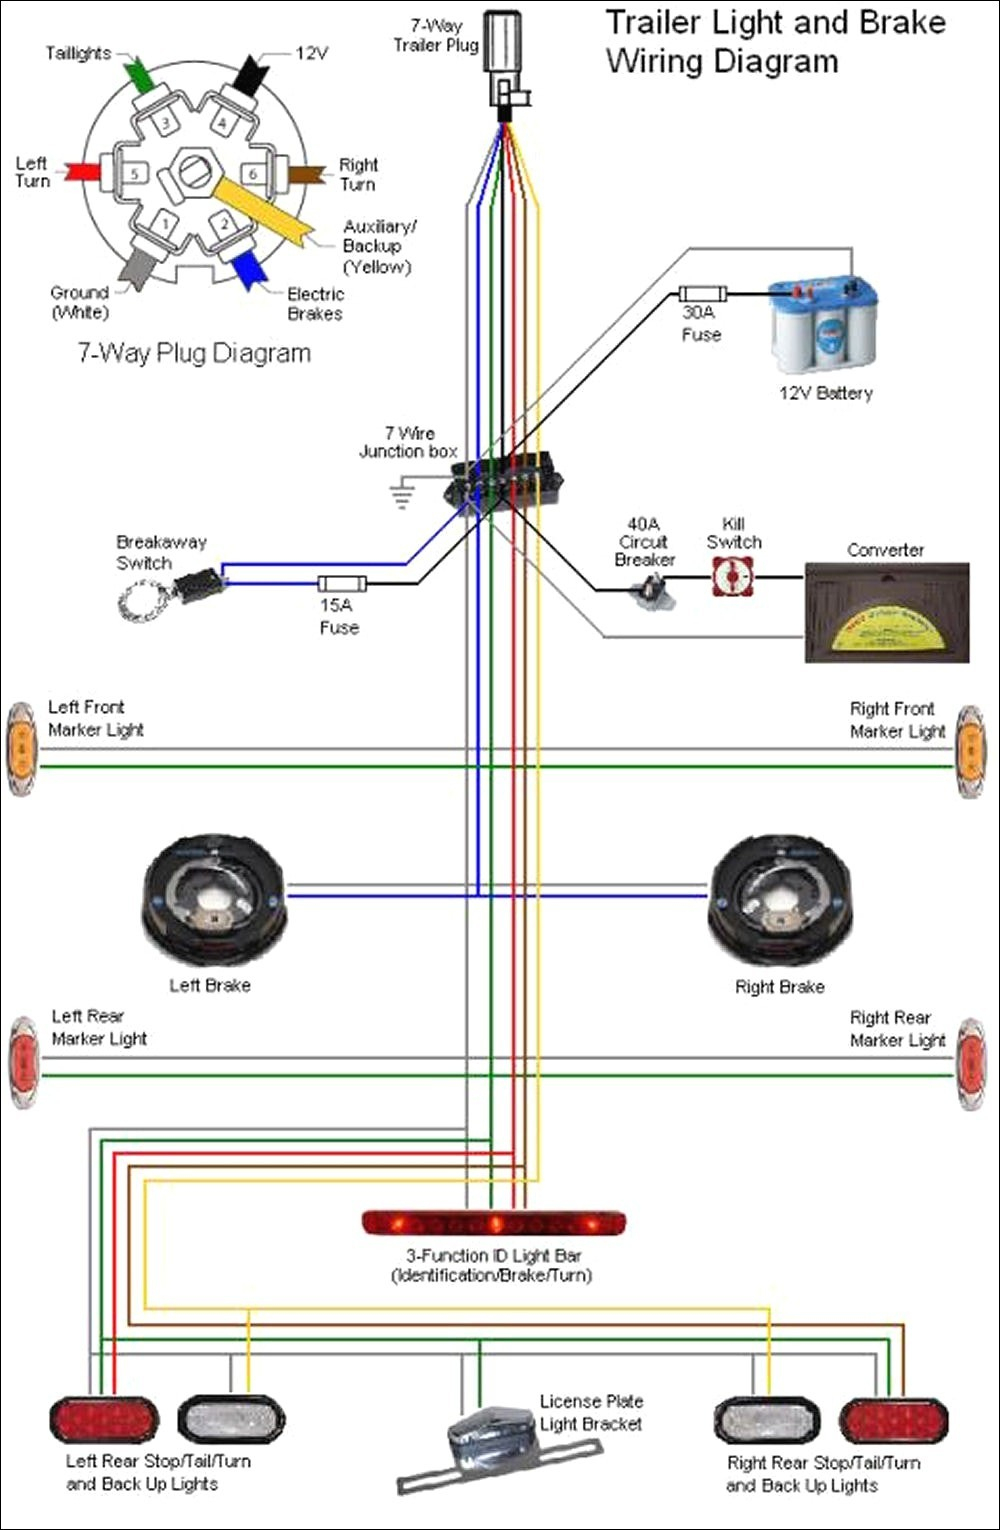 Wondrous Ford 7 Pin Trailer Wiring Diagram Basic Electronics Wiring Diagram Wiring Cloud Hisonuggs Outletorg